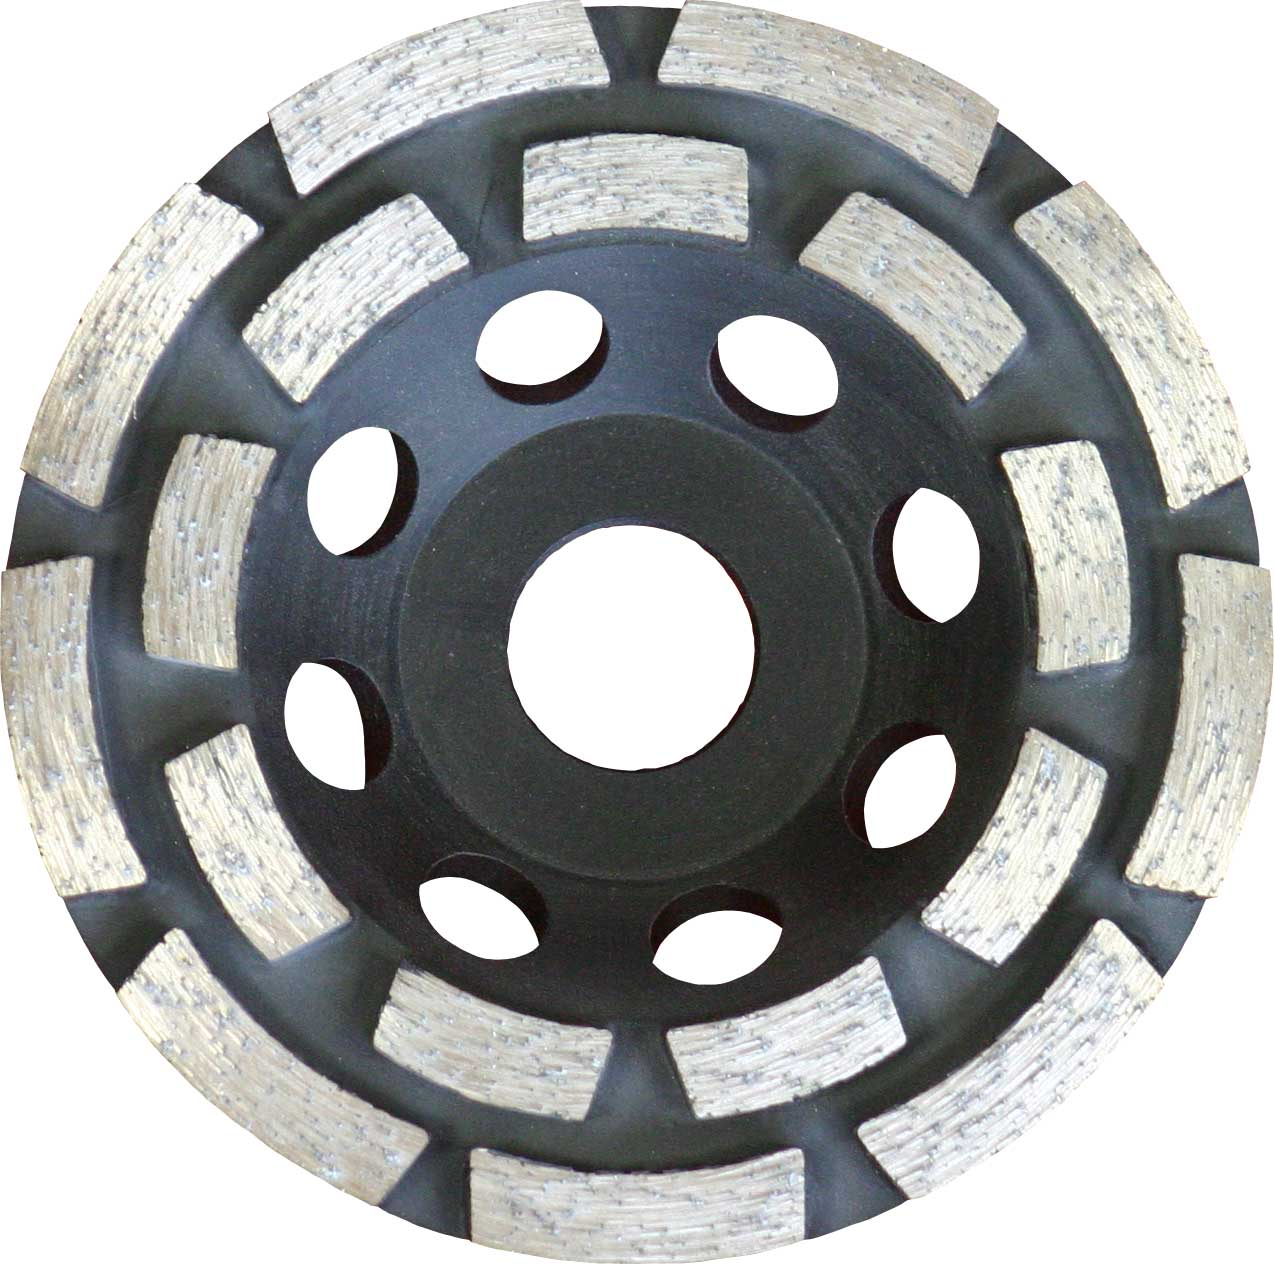 Diamond Grinding Discs: Double Row Segment